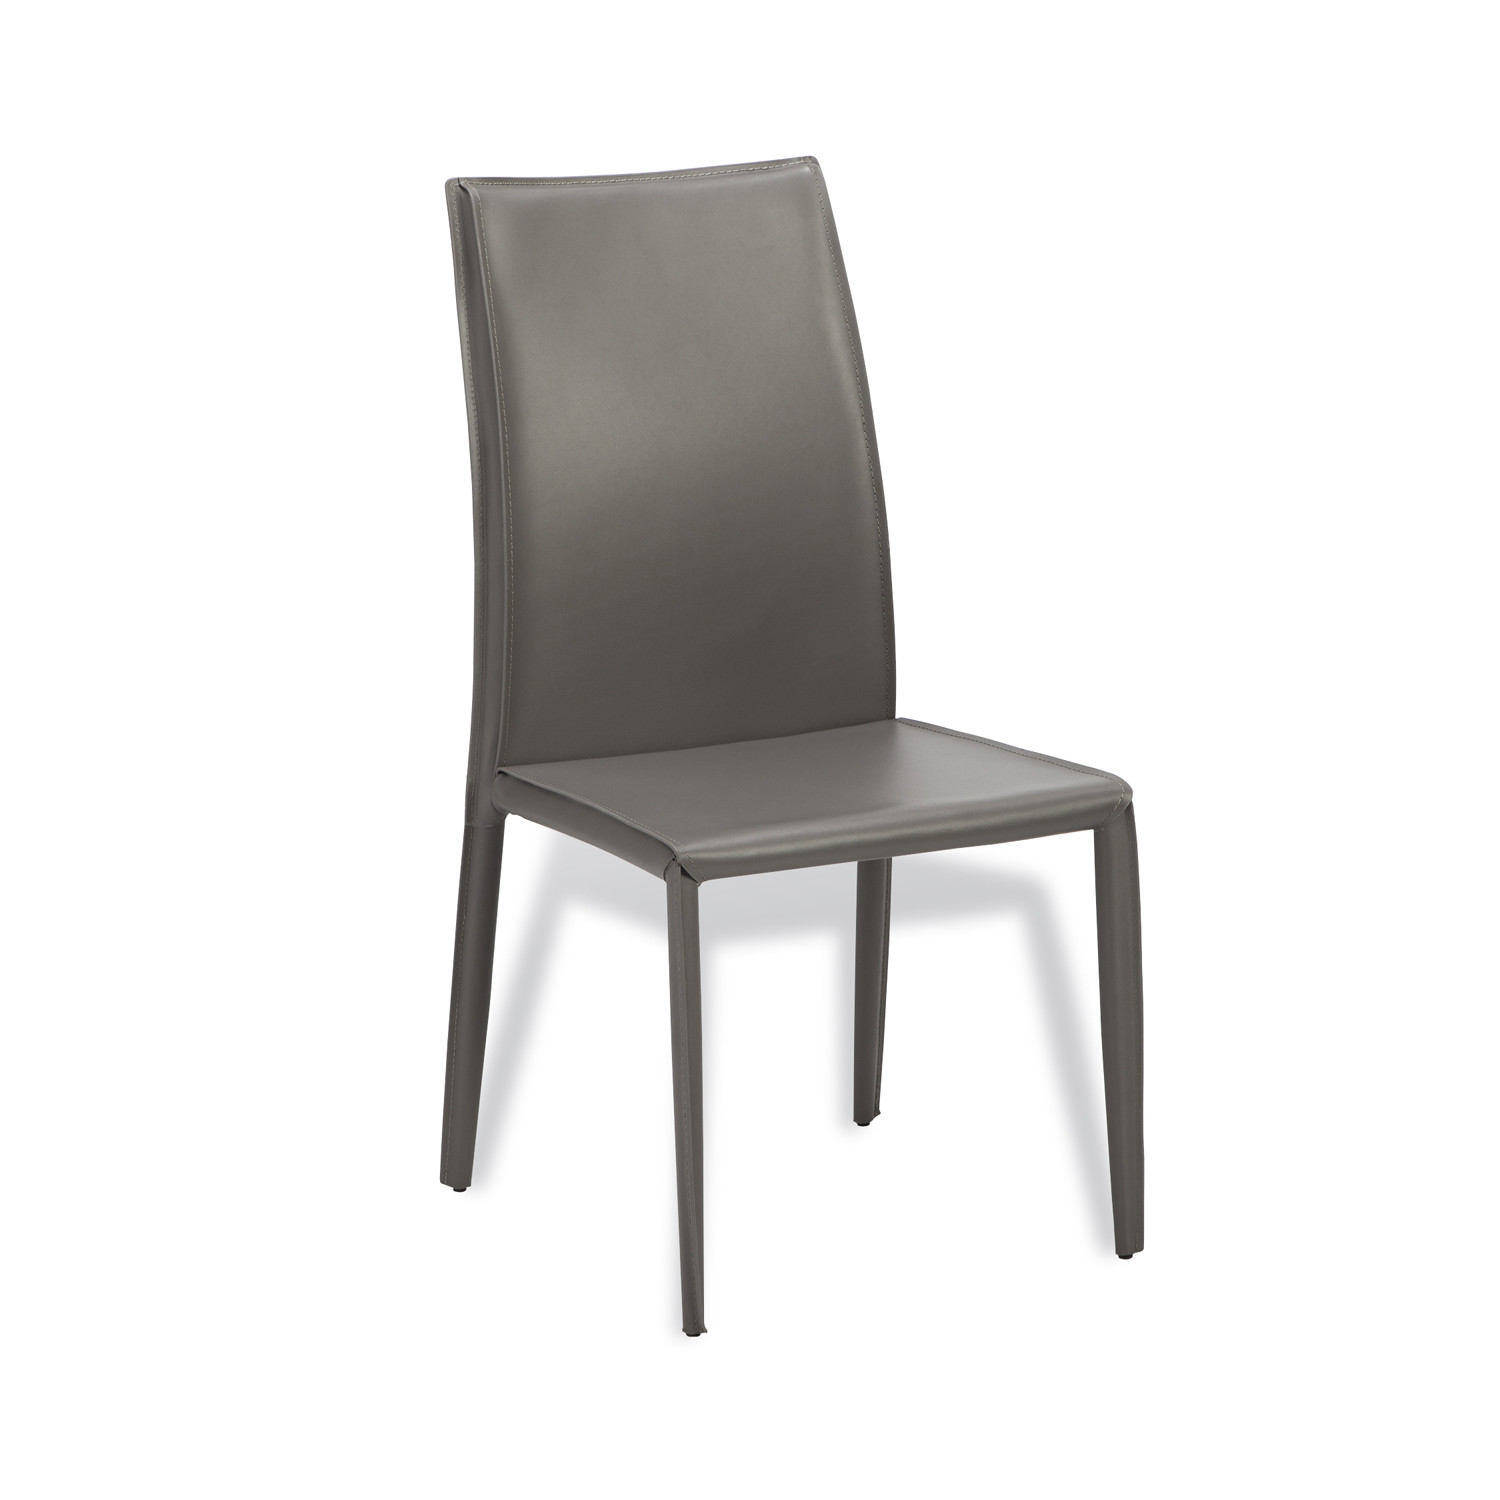 Jada high back dining chair taupe